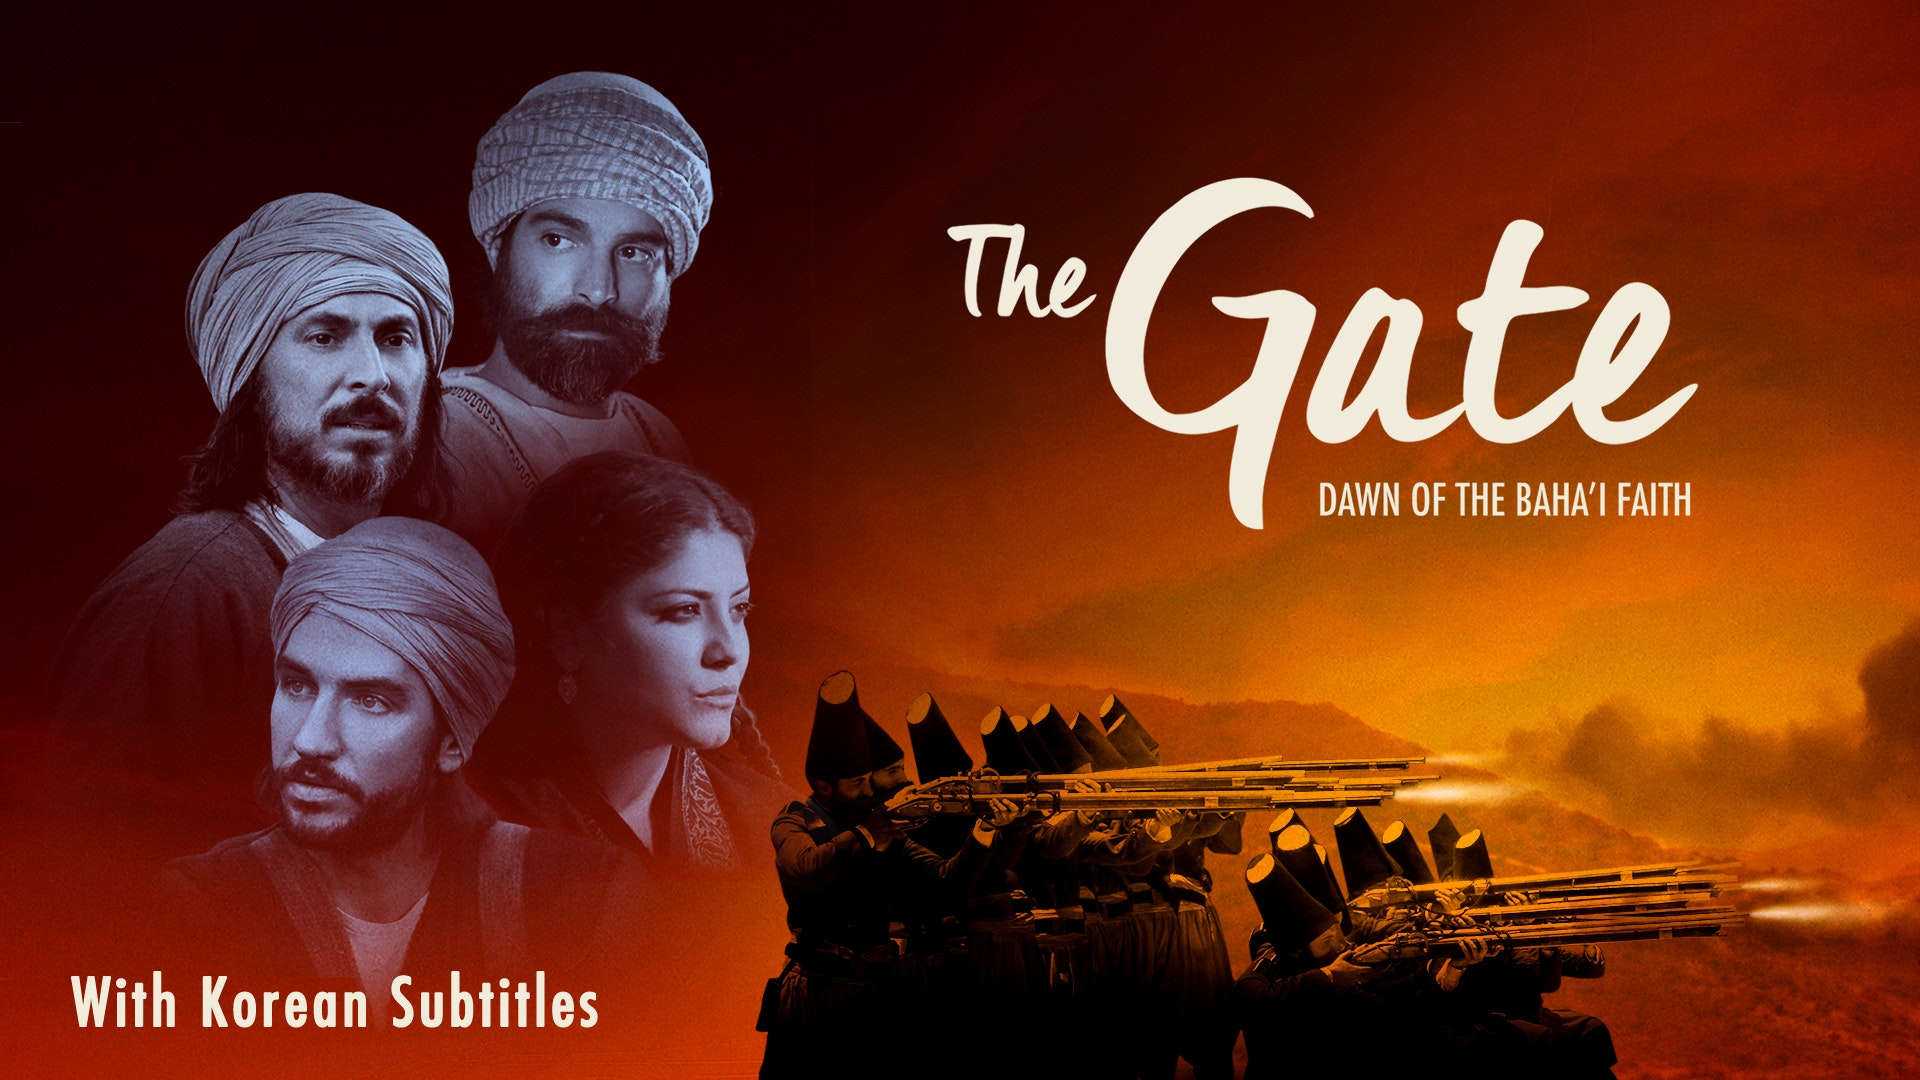 (Ko) Consumer The Gate: Dawn of the Baha'i Faith with Korean Subtitles